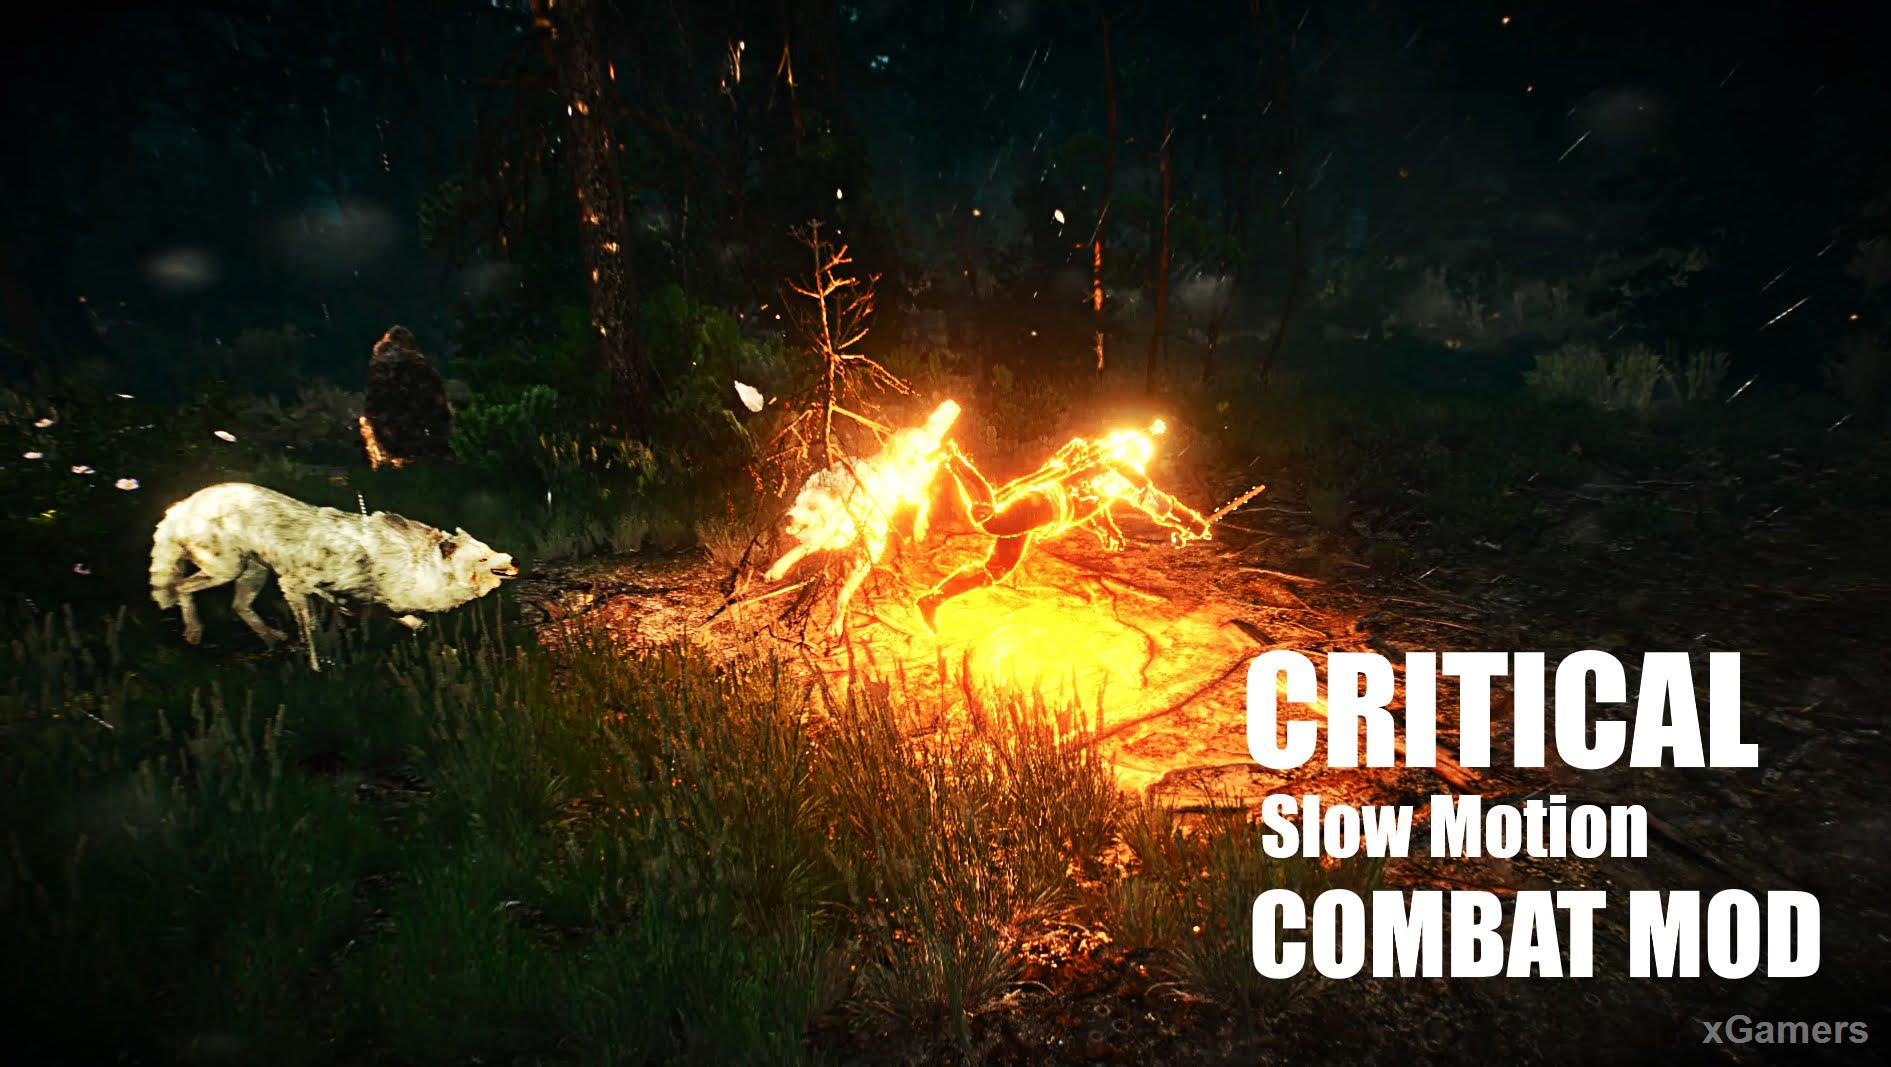 Critical slow motion combat mod in The Witcher 3